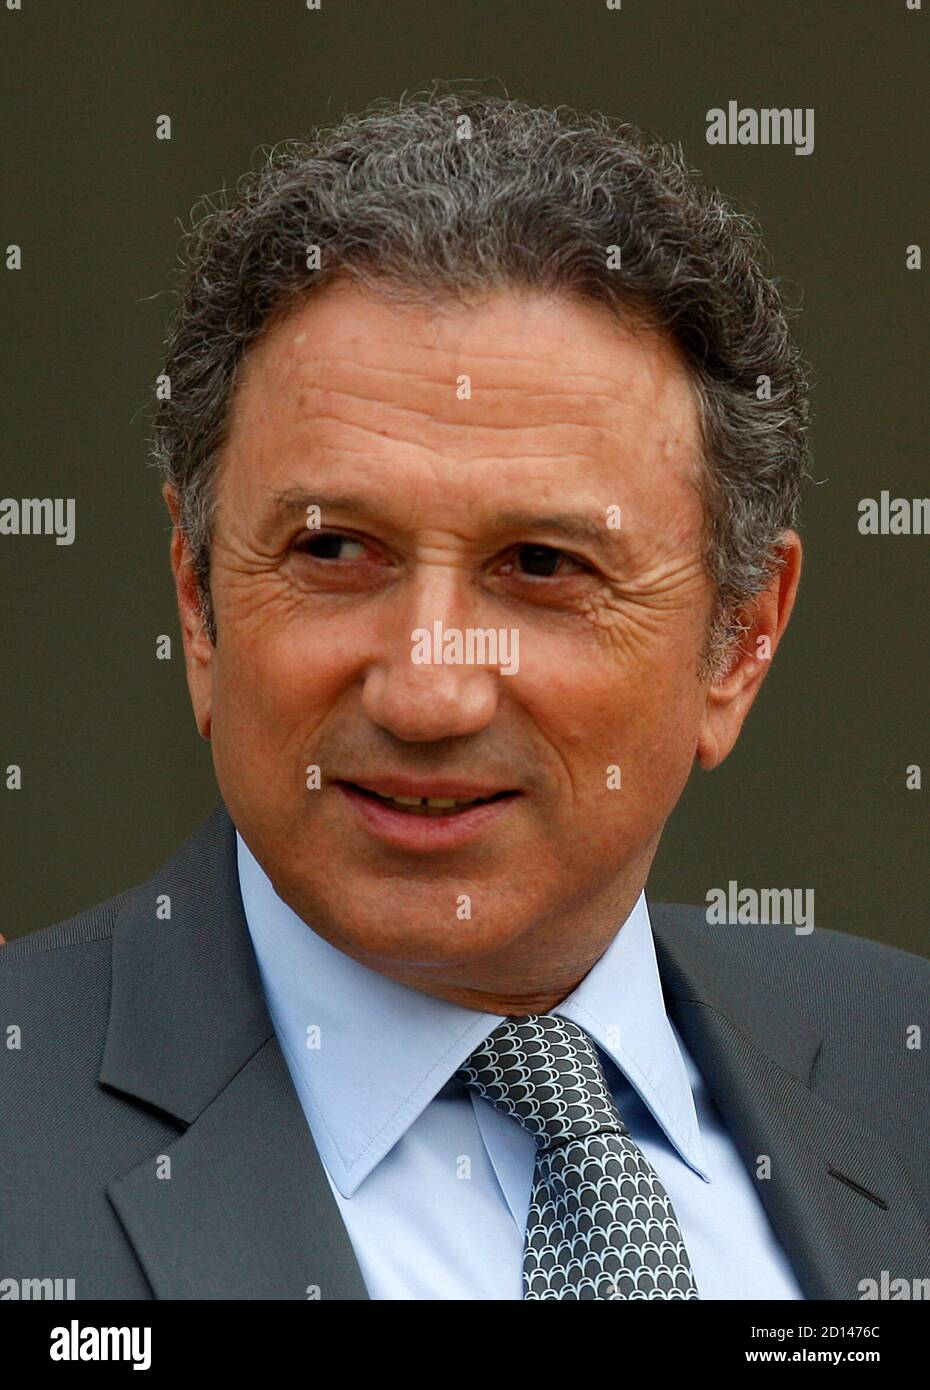 French Television Anchorman Michel Drucker Leaves The Elysee Palace In Paris May 22 2008 Reuters Charles Platiau France Stock Photo Alamy